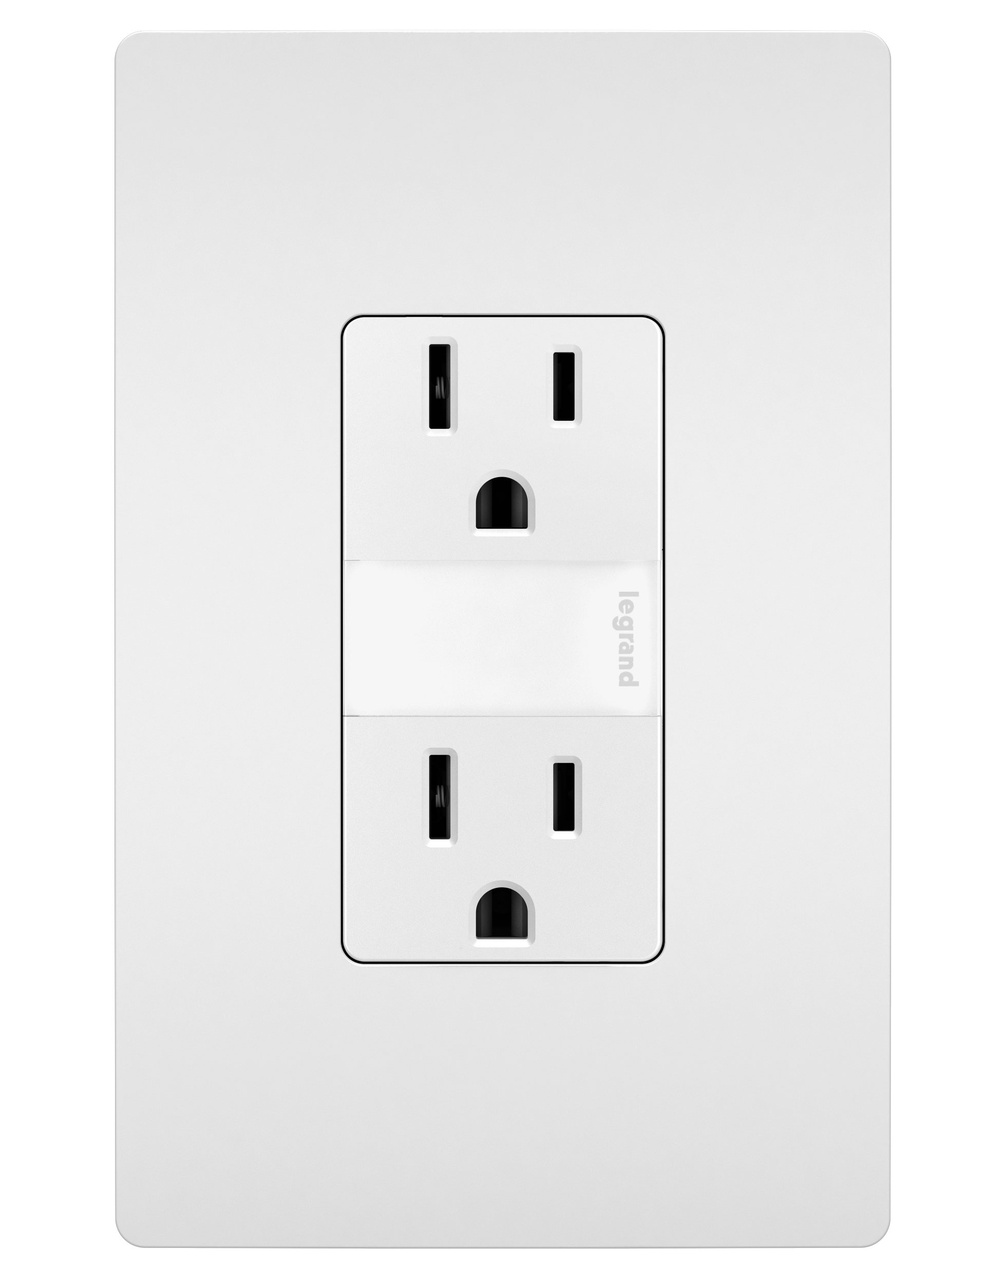 Night Light with Two 15A Tamper-Resistant Outlets, White